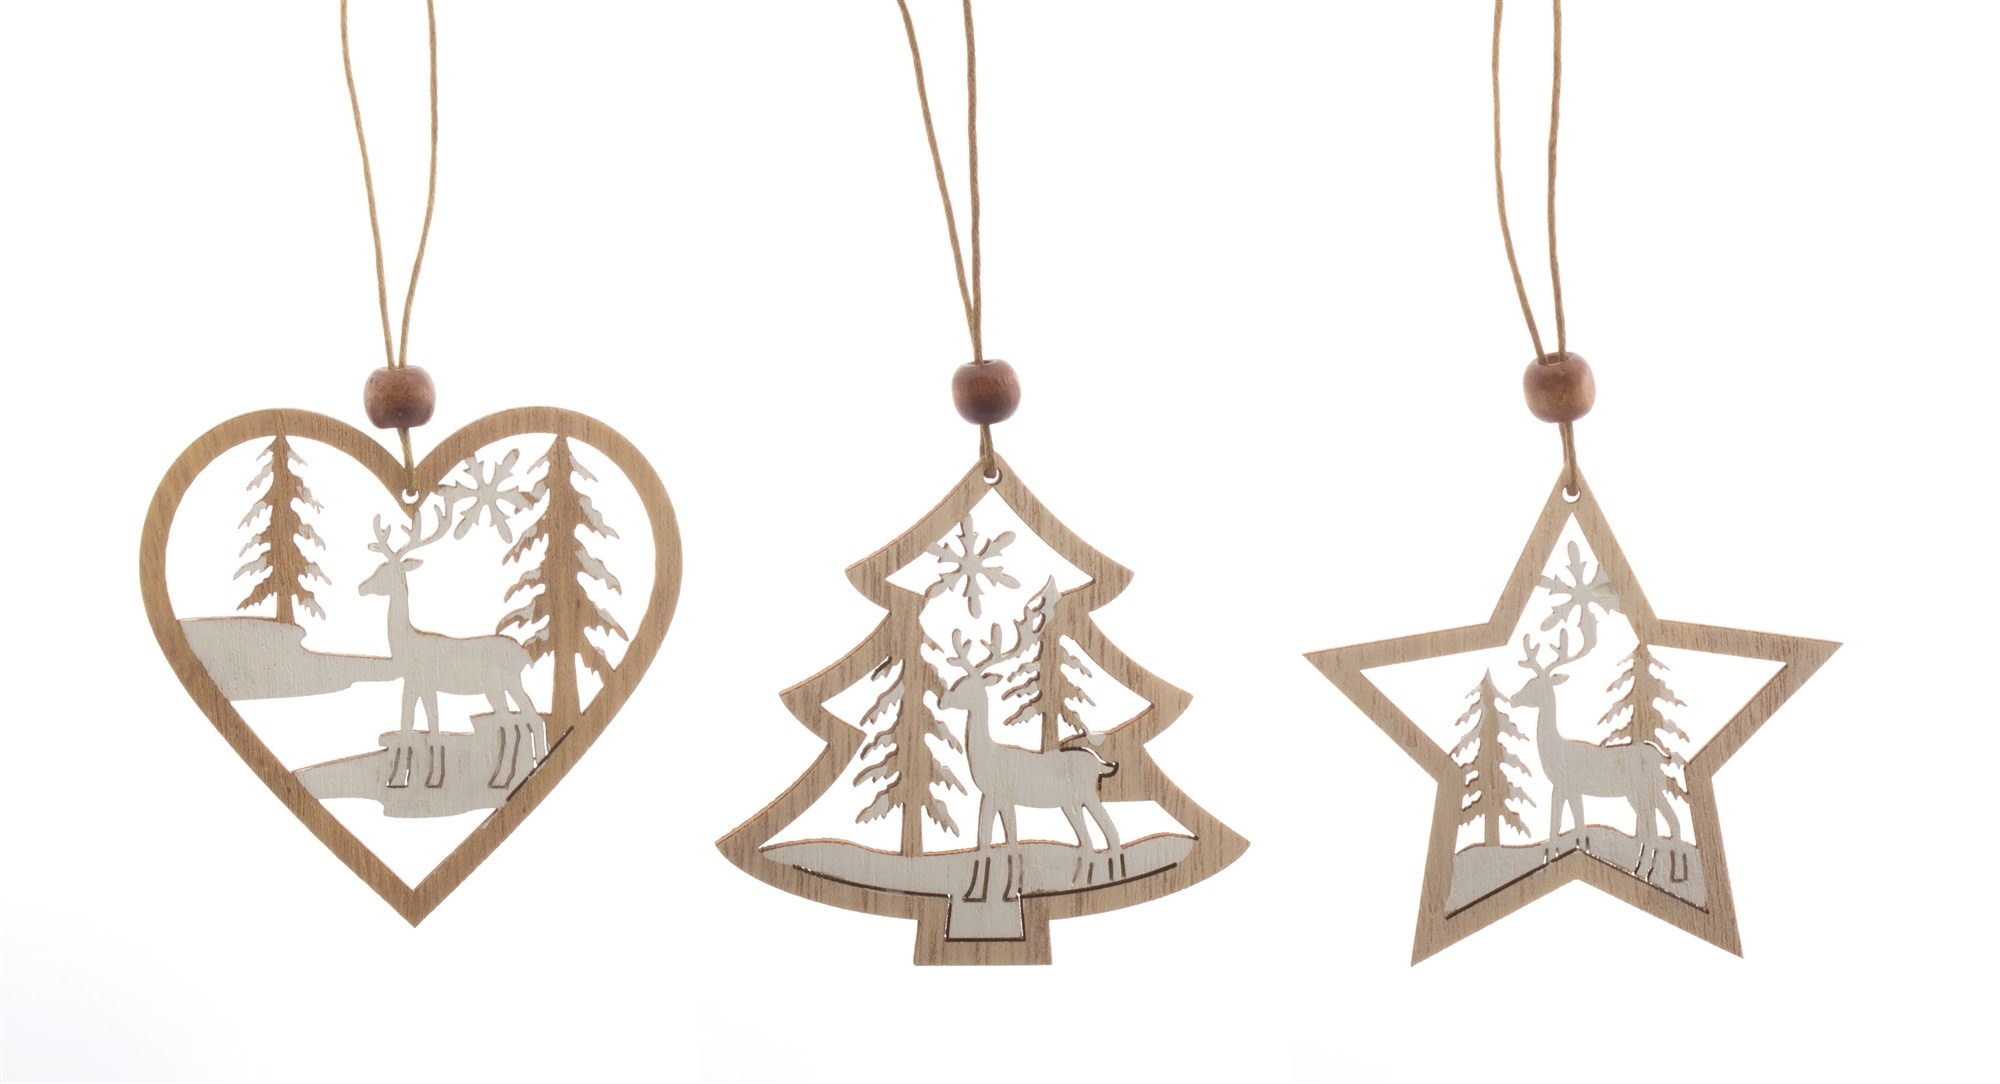 Set of 9 Wooden Cut-Out Ornaments